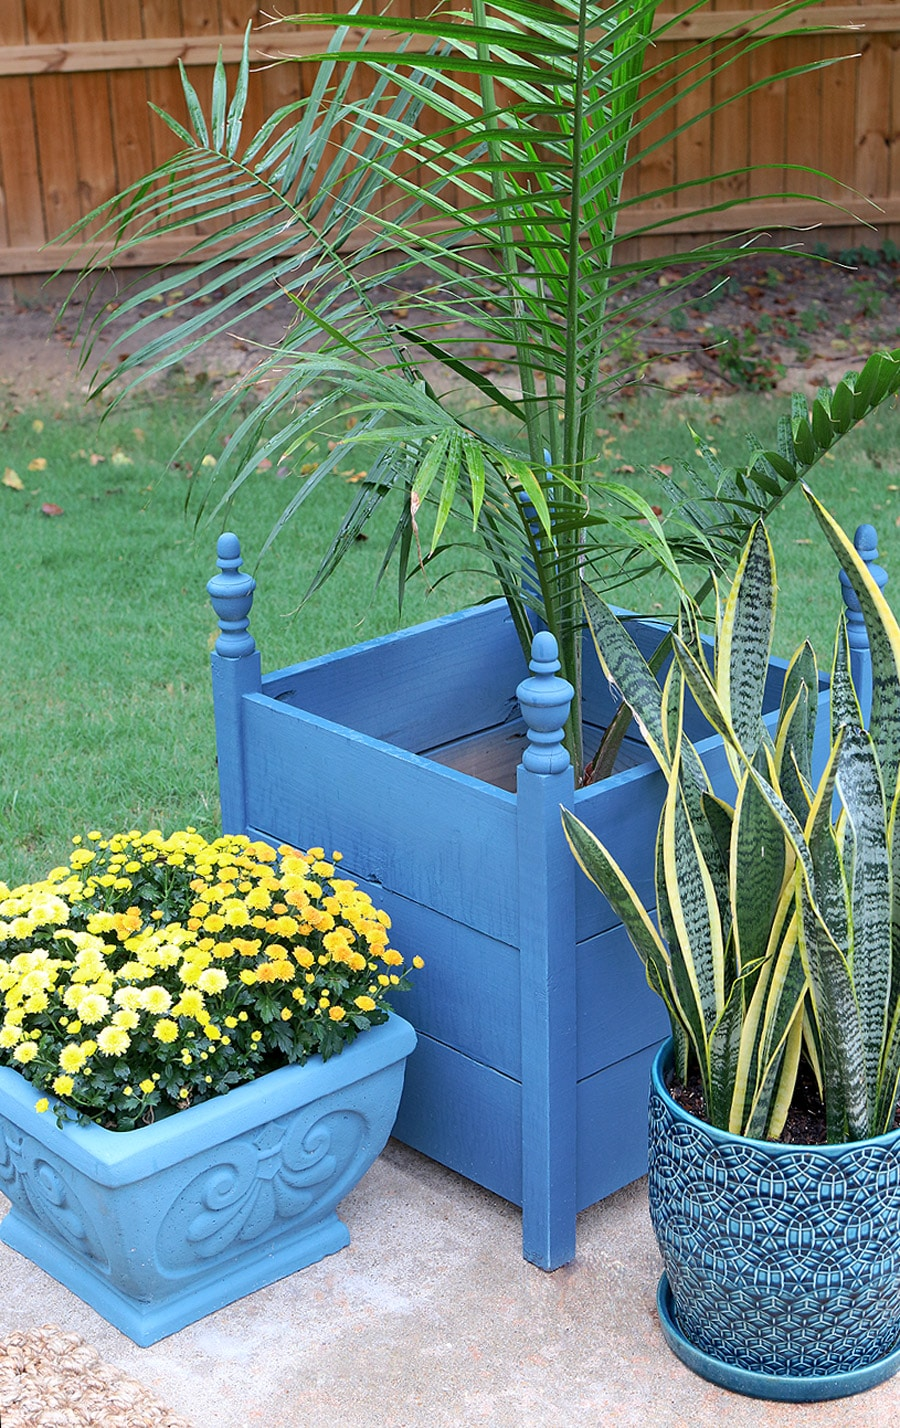 planter painted an artsy diy appetite blocking summer color planters nef dsc